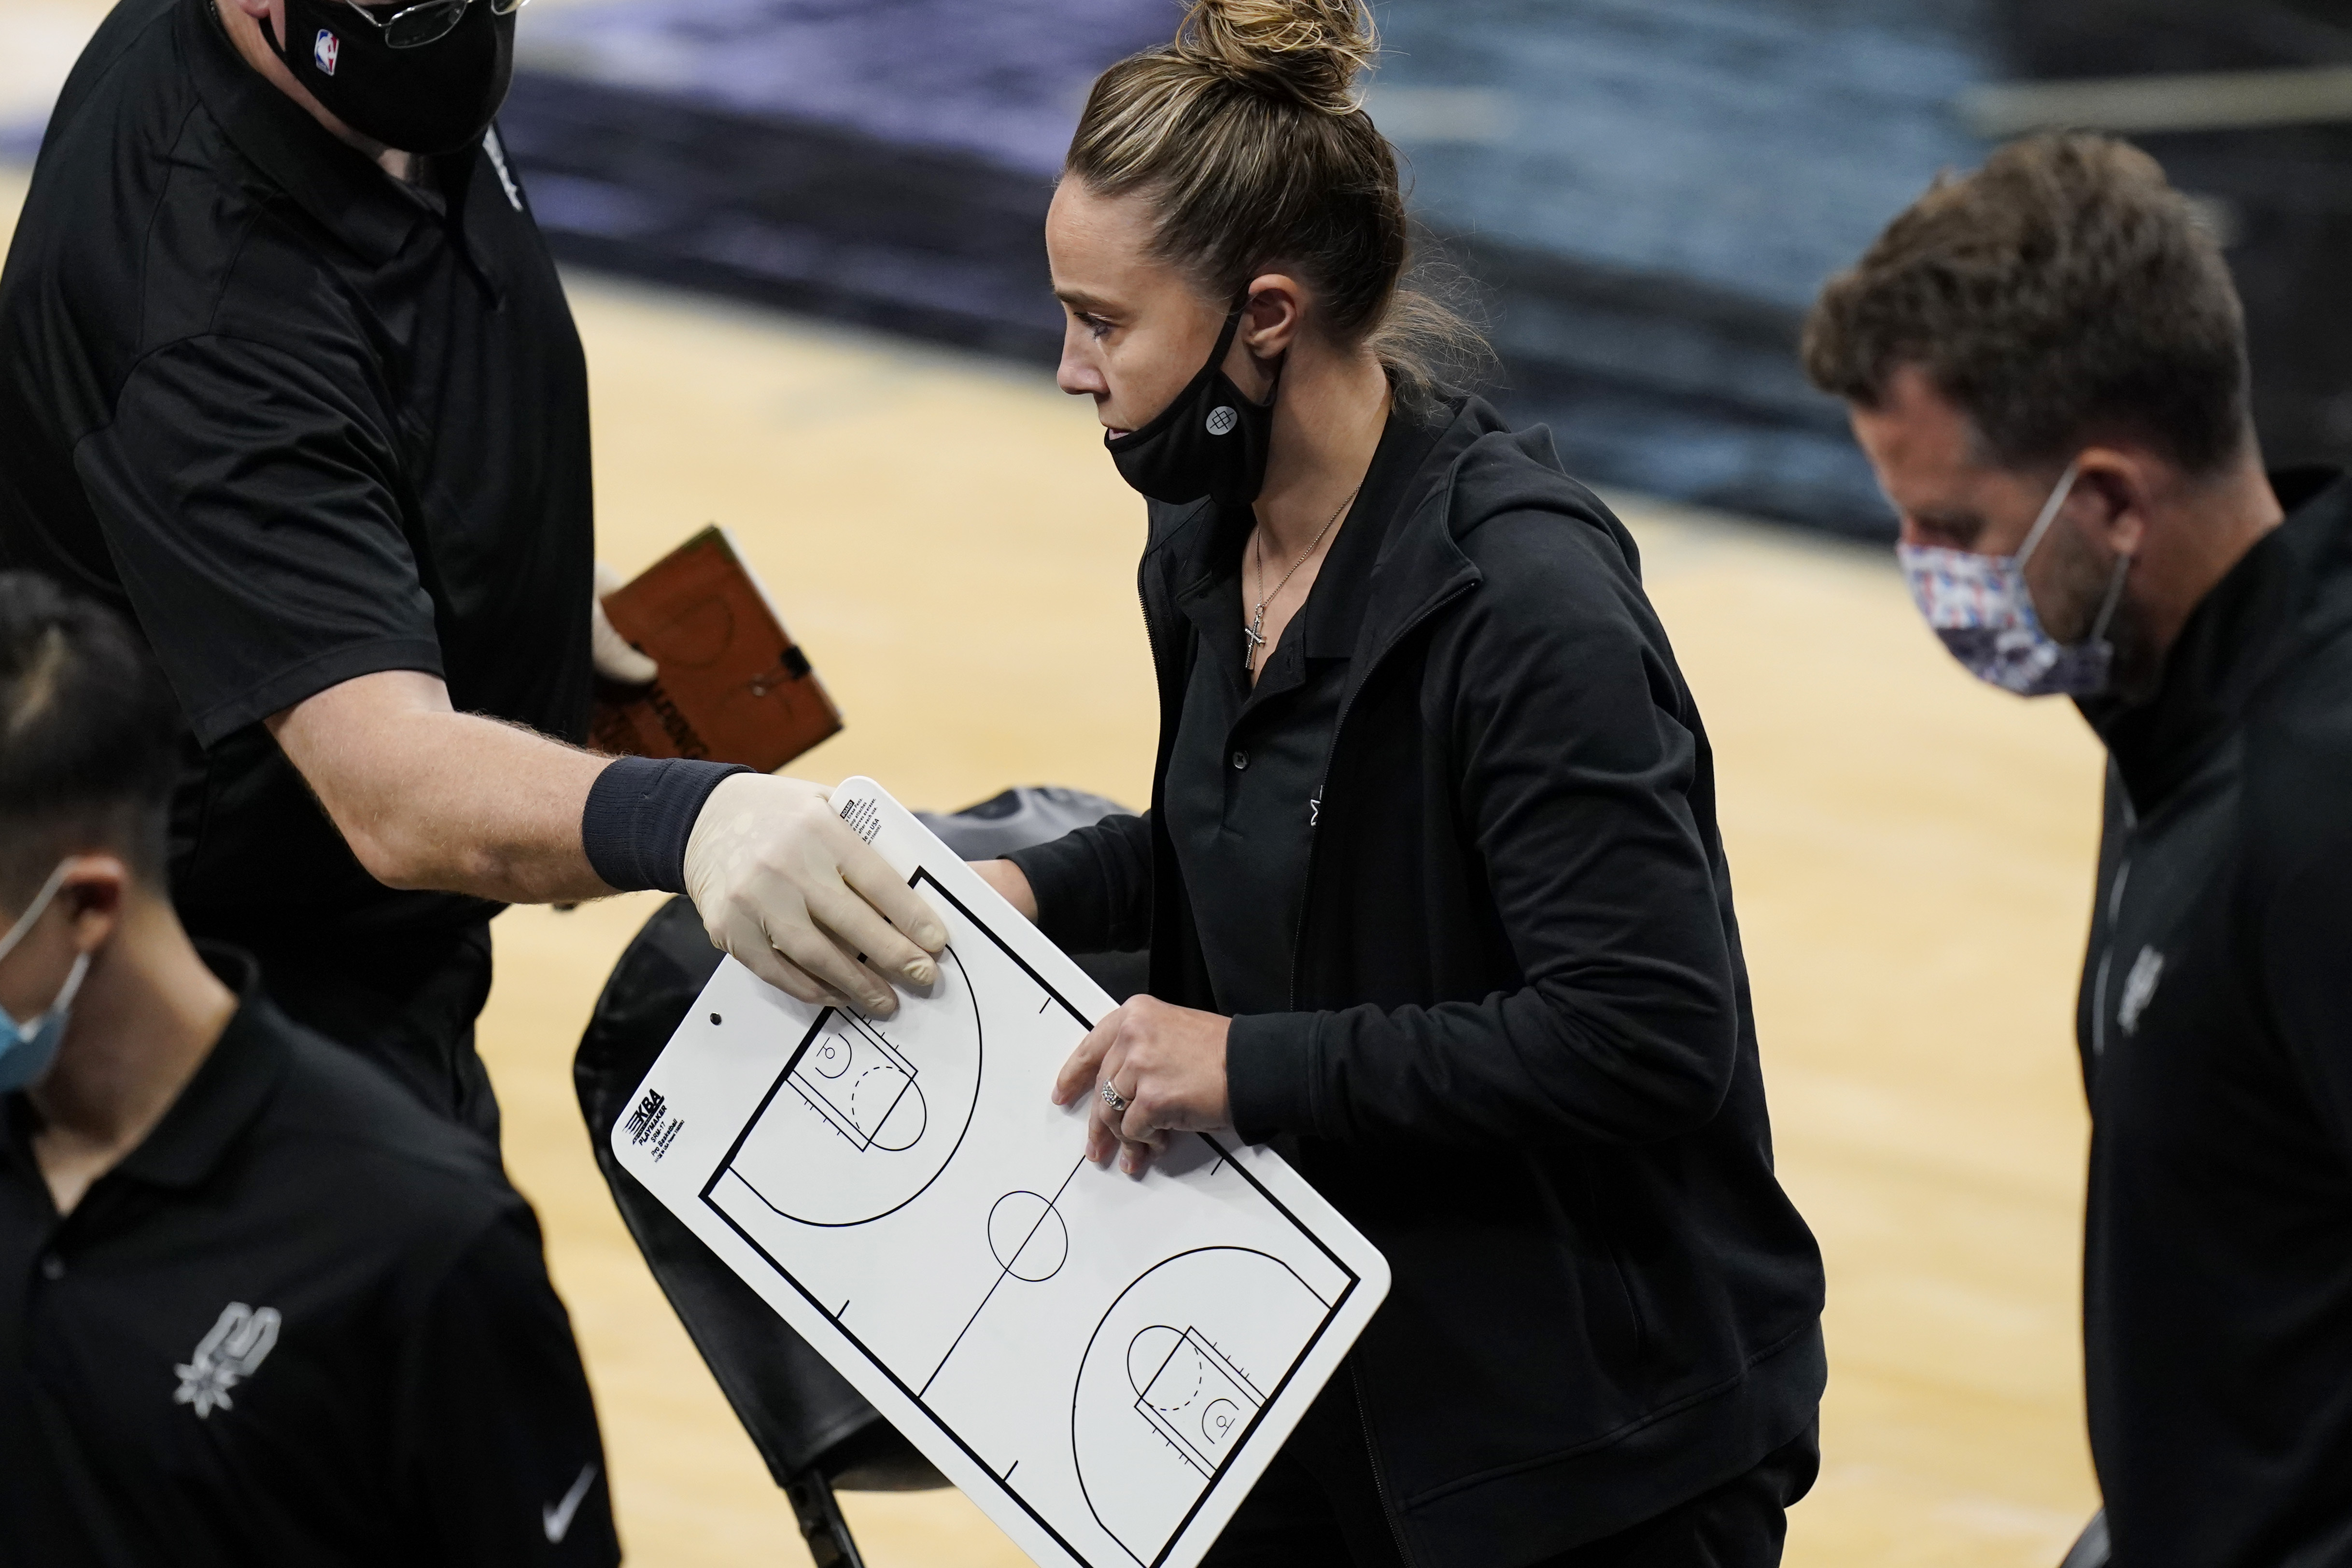 San Antonio Spurs assistant coach Becky Hammon breaks from a huddle during a timeout in the second half of an NBA basketball game against the Los Angeles Lakers in San Antonio, Wednesday, Dec. 30, 2020. Hammon became the first woman to direct an NBA team, taking over the Spurs after coach Gregg Popovich was ejected in a 121-107 loss to the Lakers. Photo: AP